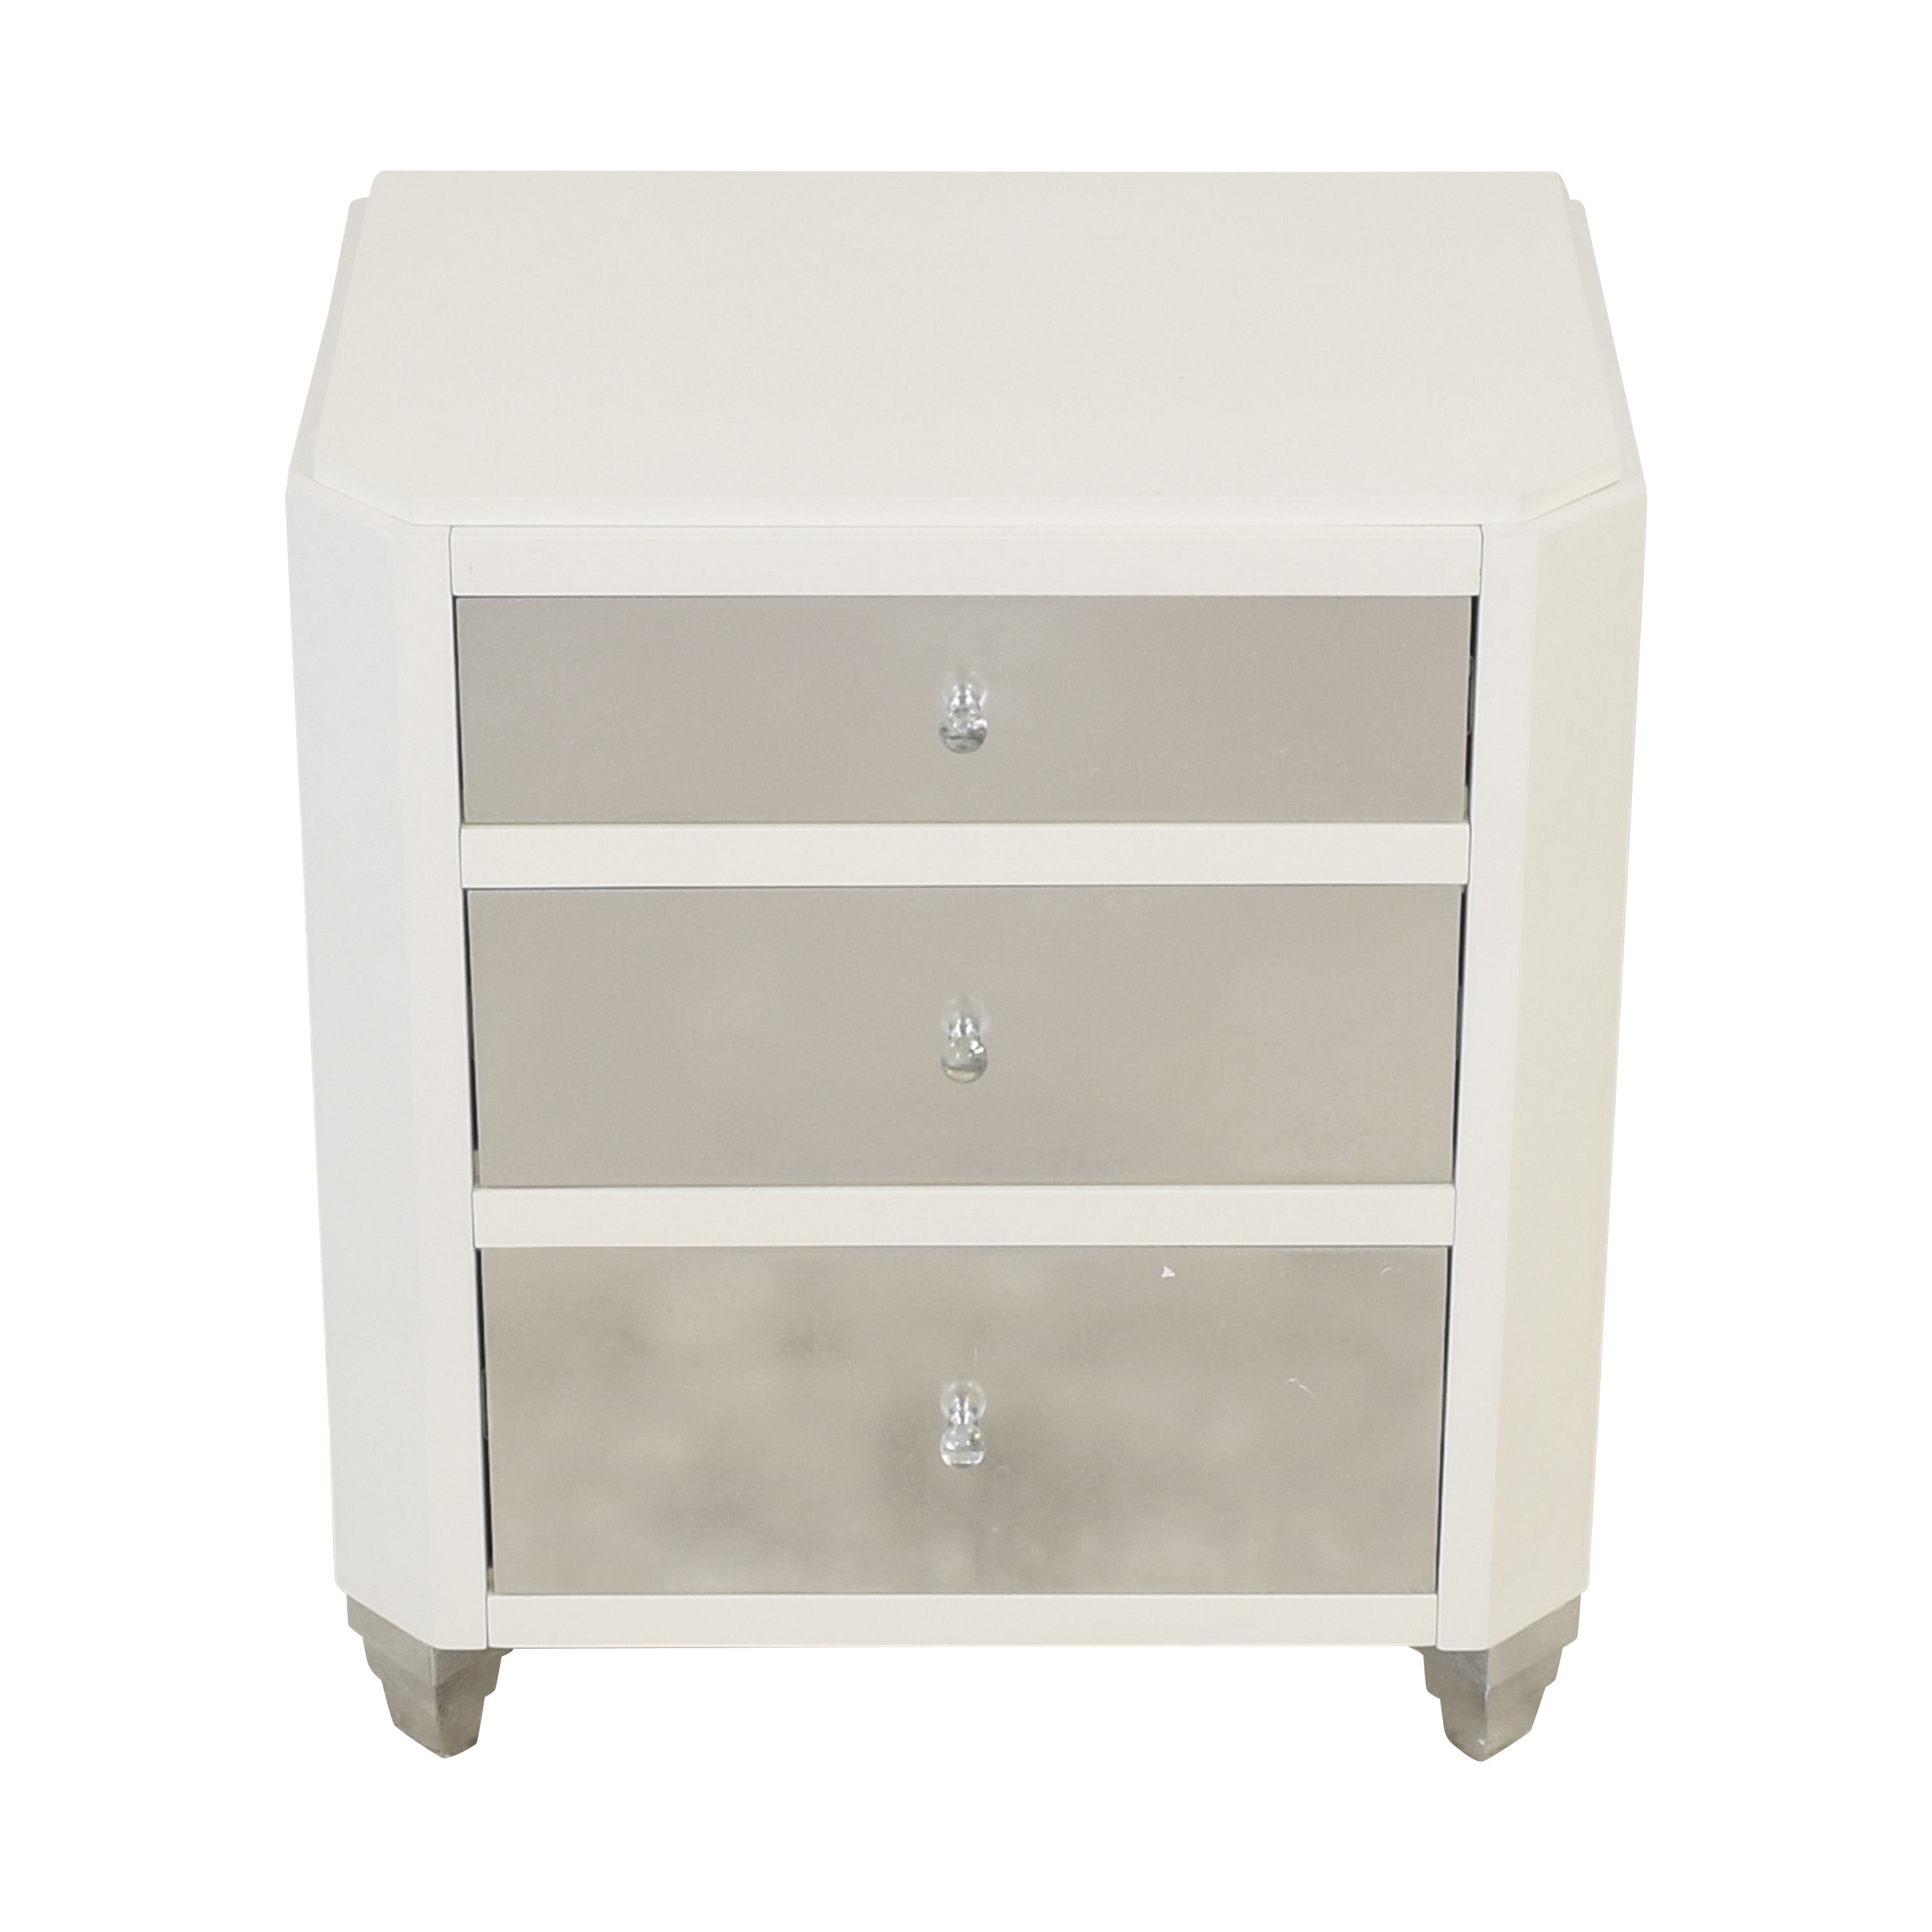 Bungalow 5 Bungalow 5 Three Drawer Chest used